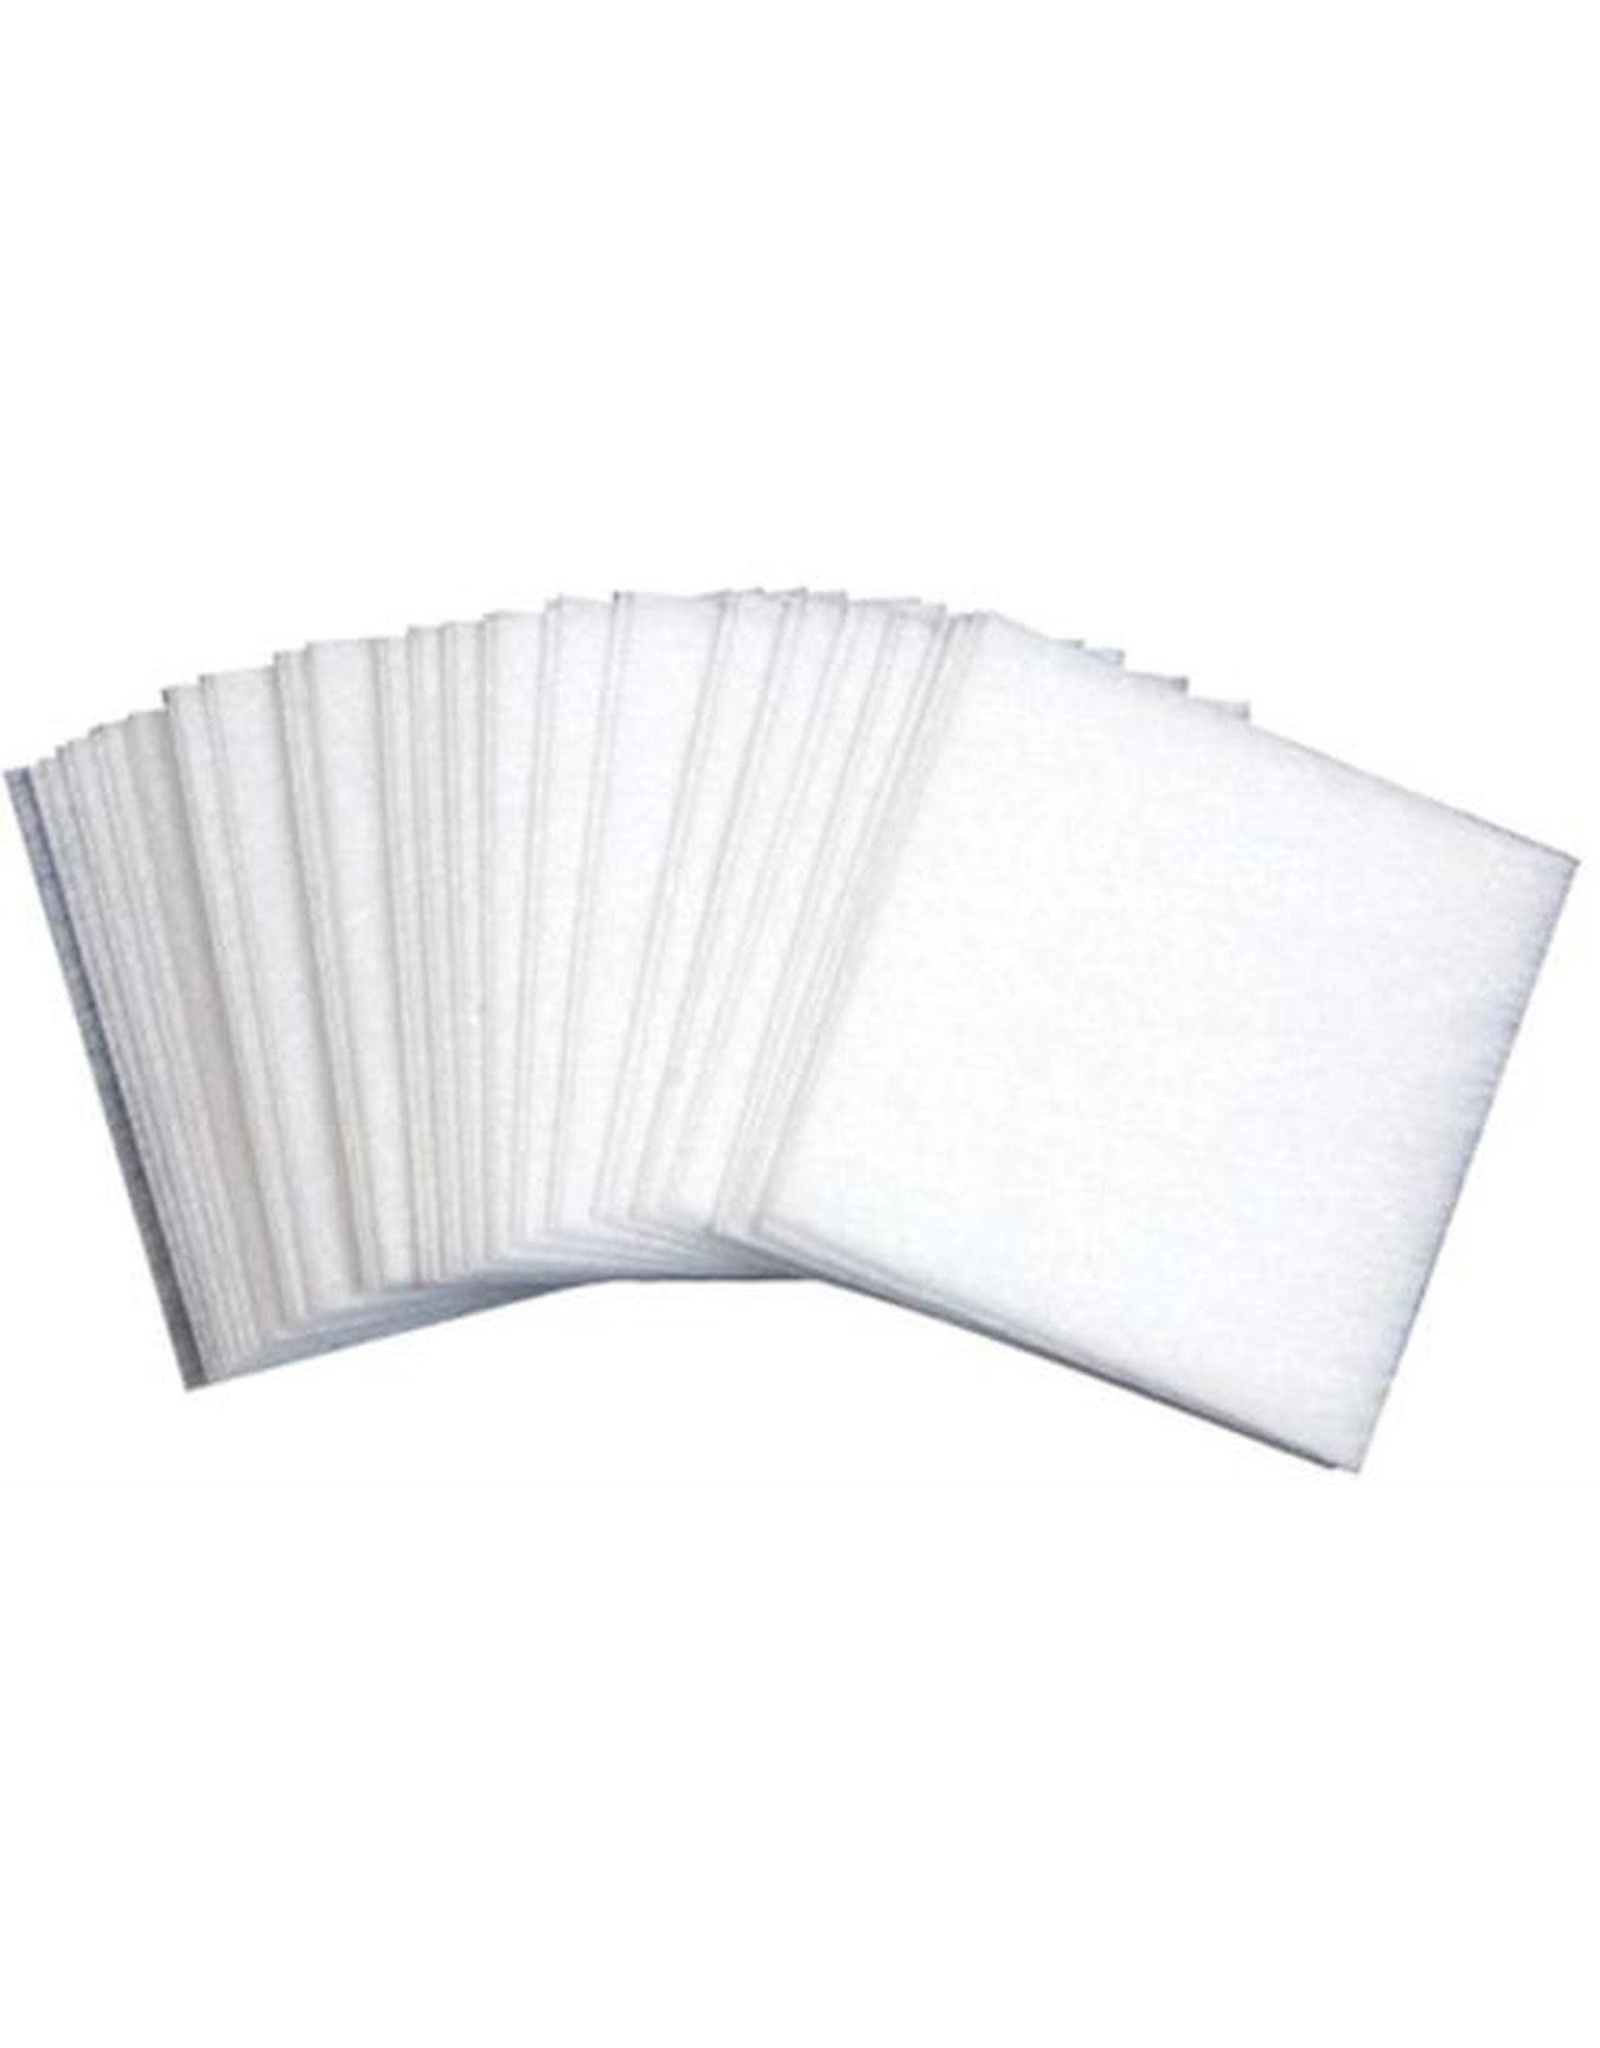 Outers .30-45 Cal Cleaning Patches - 300 Count